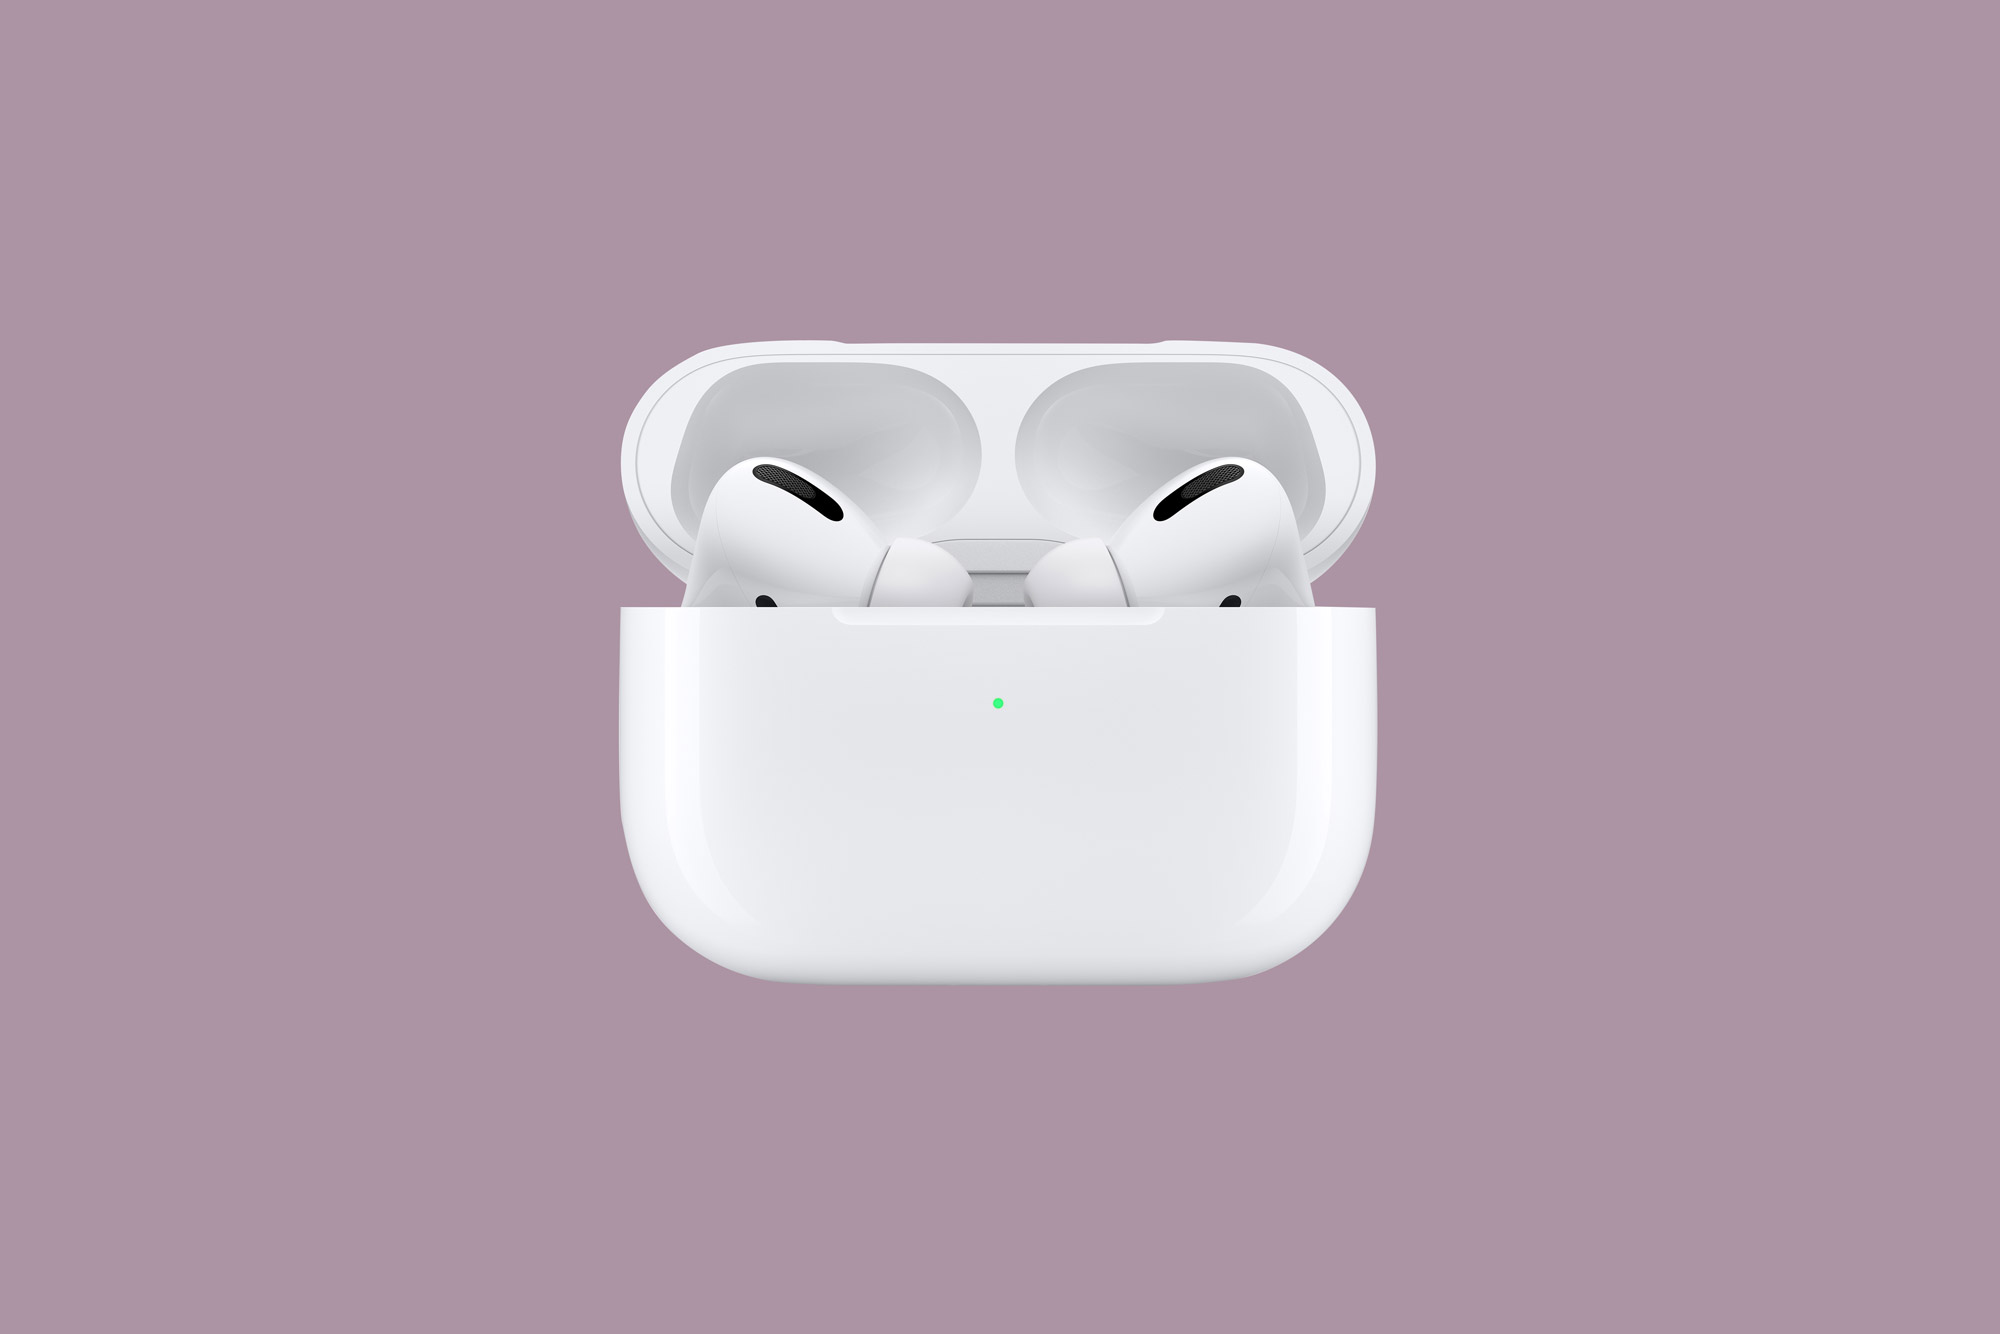 apple airpods pro new design case with apple airpods